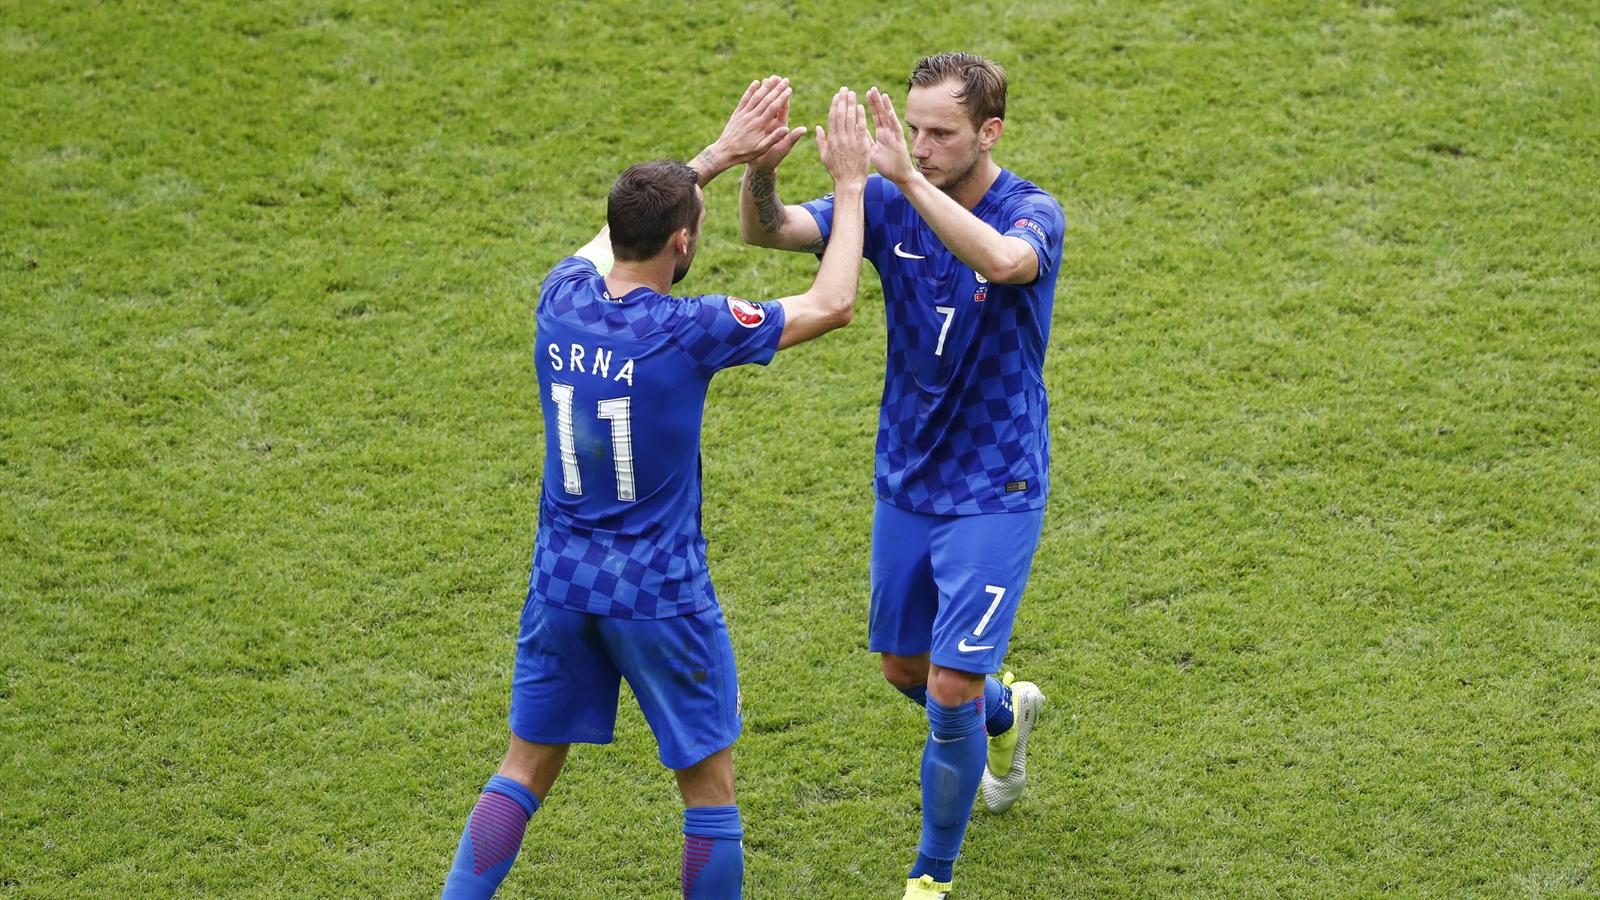 Croatia captain Srna to leave Euro 2016 after father's death